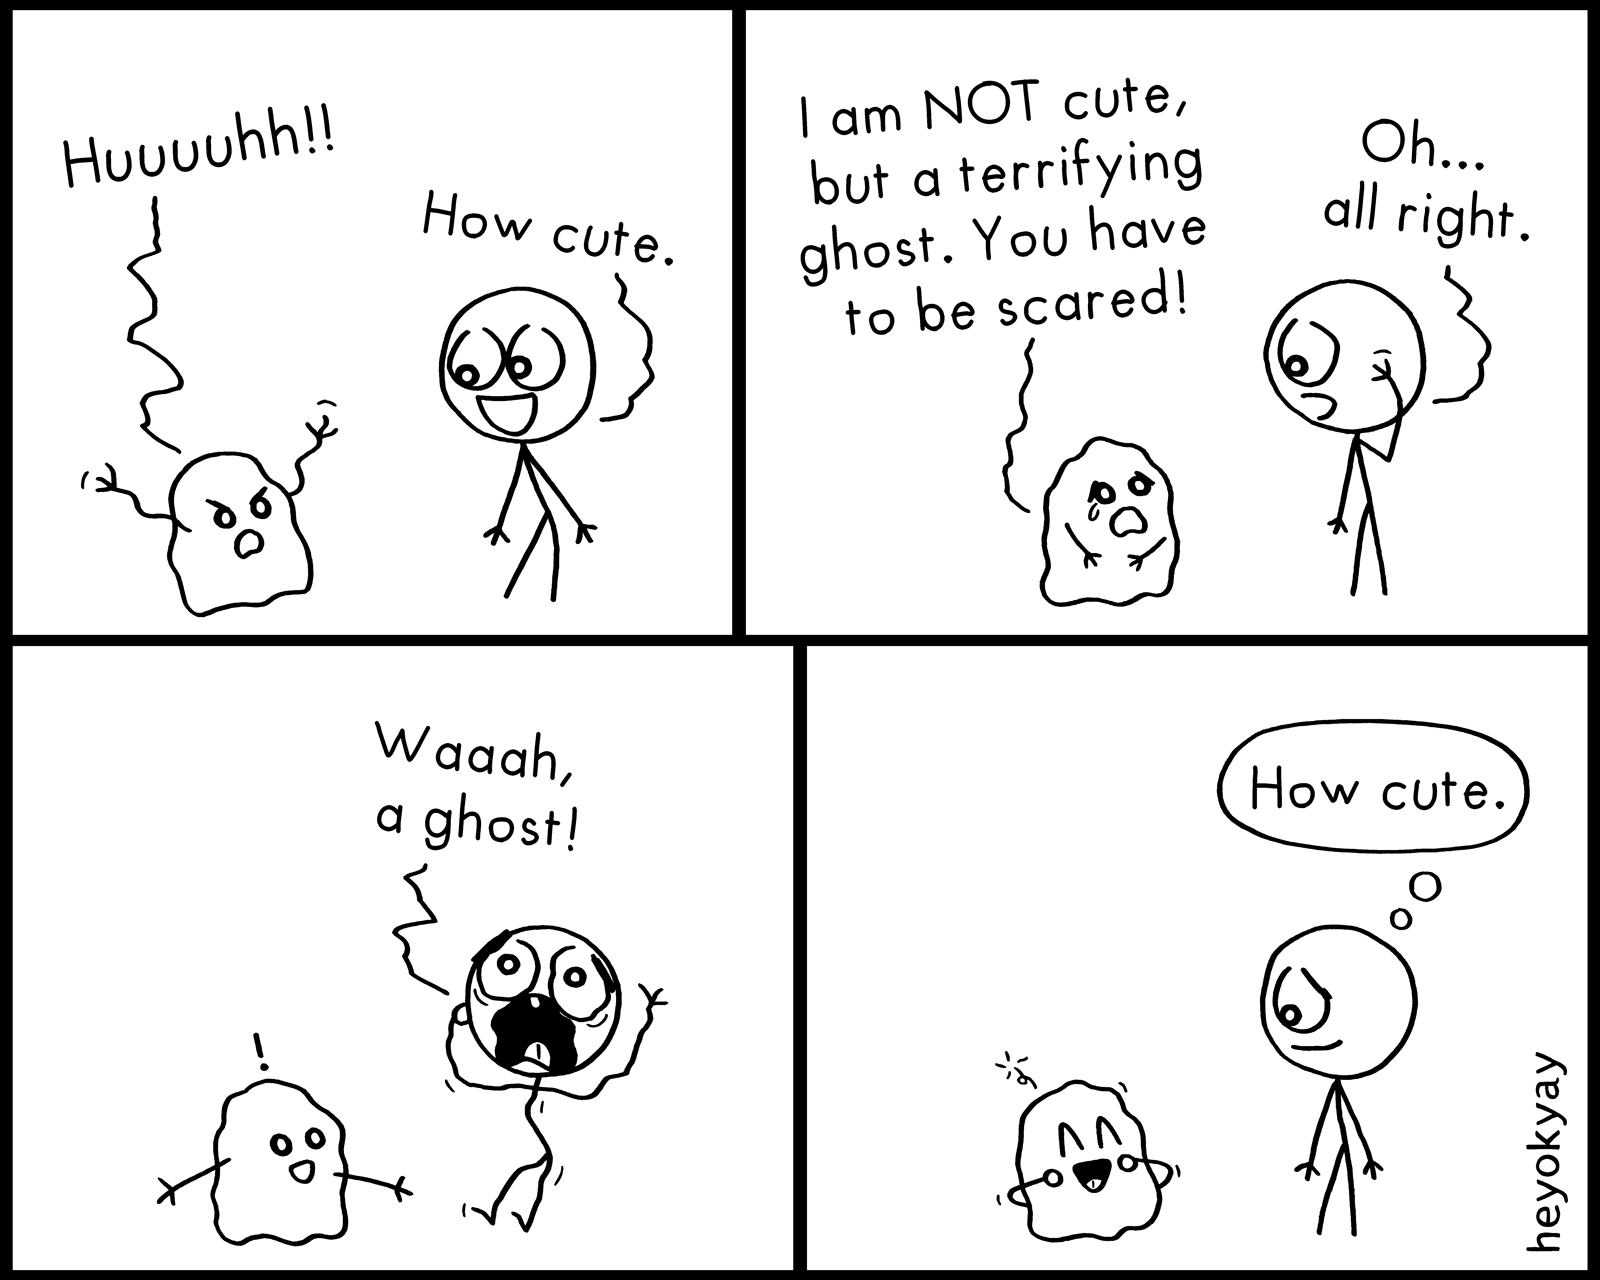 Huuuuhh! How cute. I am NOT cute, but a terrifying ghost. You have to be scared! Oh... all right. Waaah, a ghost! How cute. Scary heyokyay comic